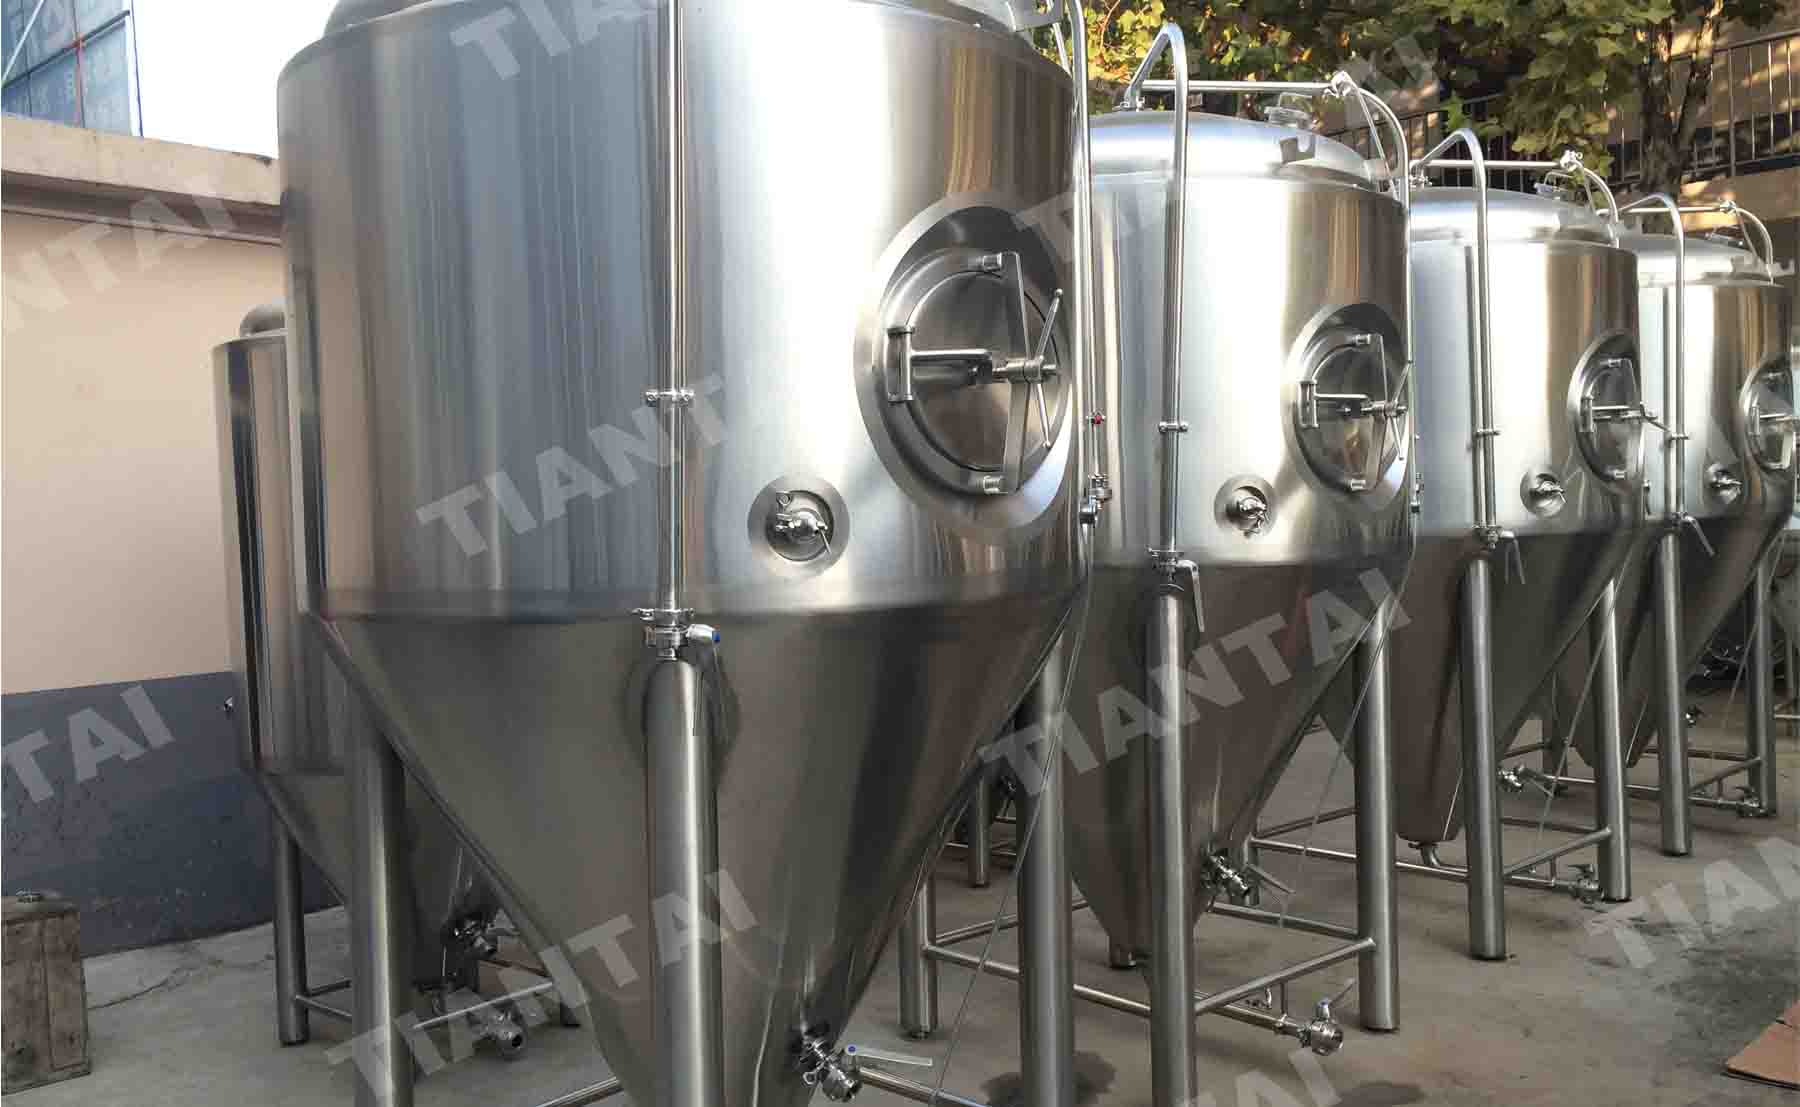 What will cause negative pressure in the fermenters?